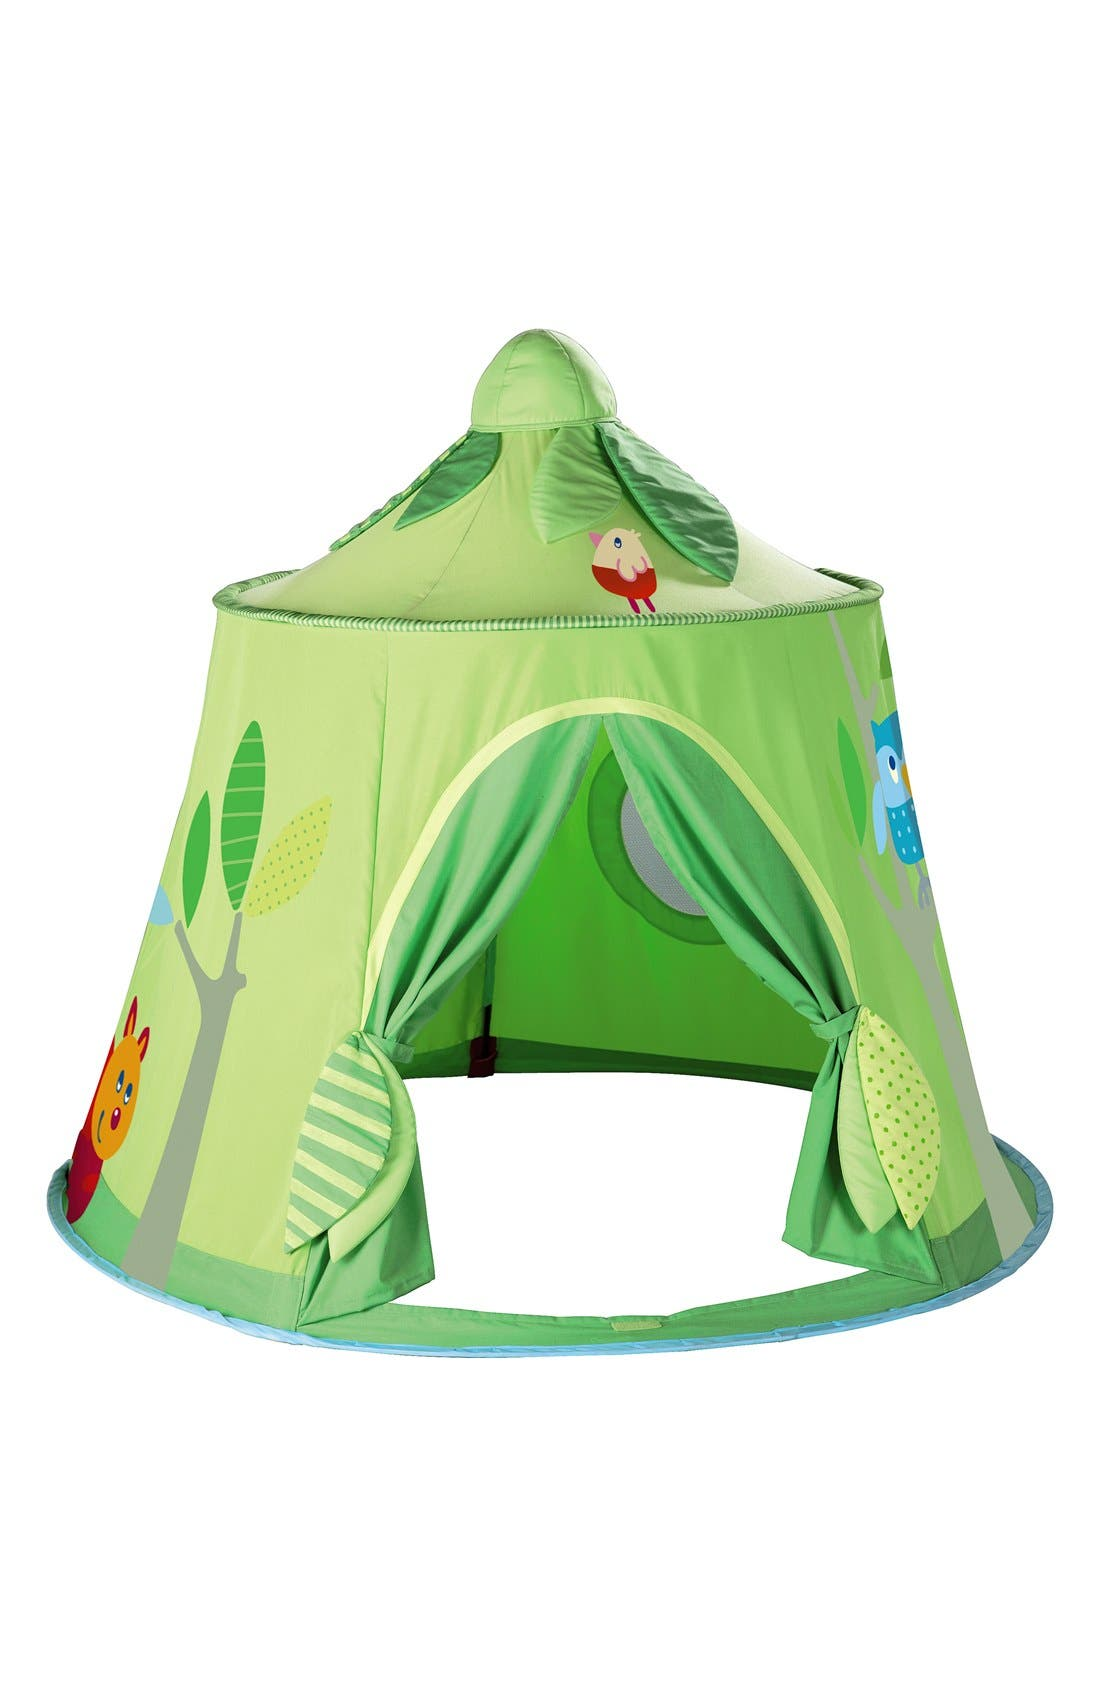 'Magic Forest' Play Tent,                             Main thumbnail 1, color,                             300